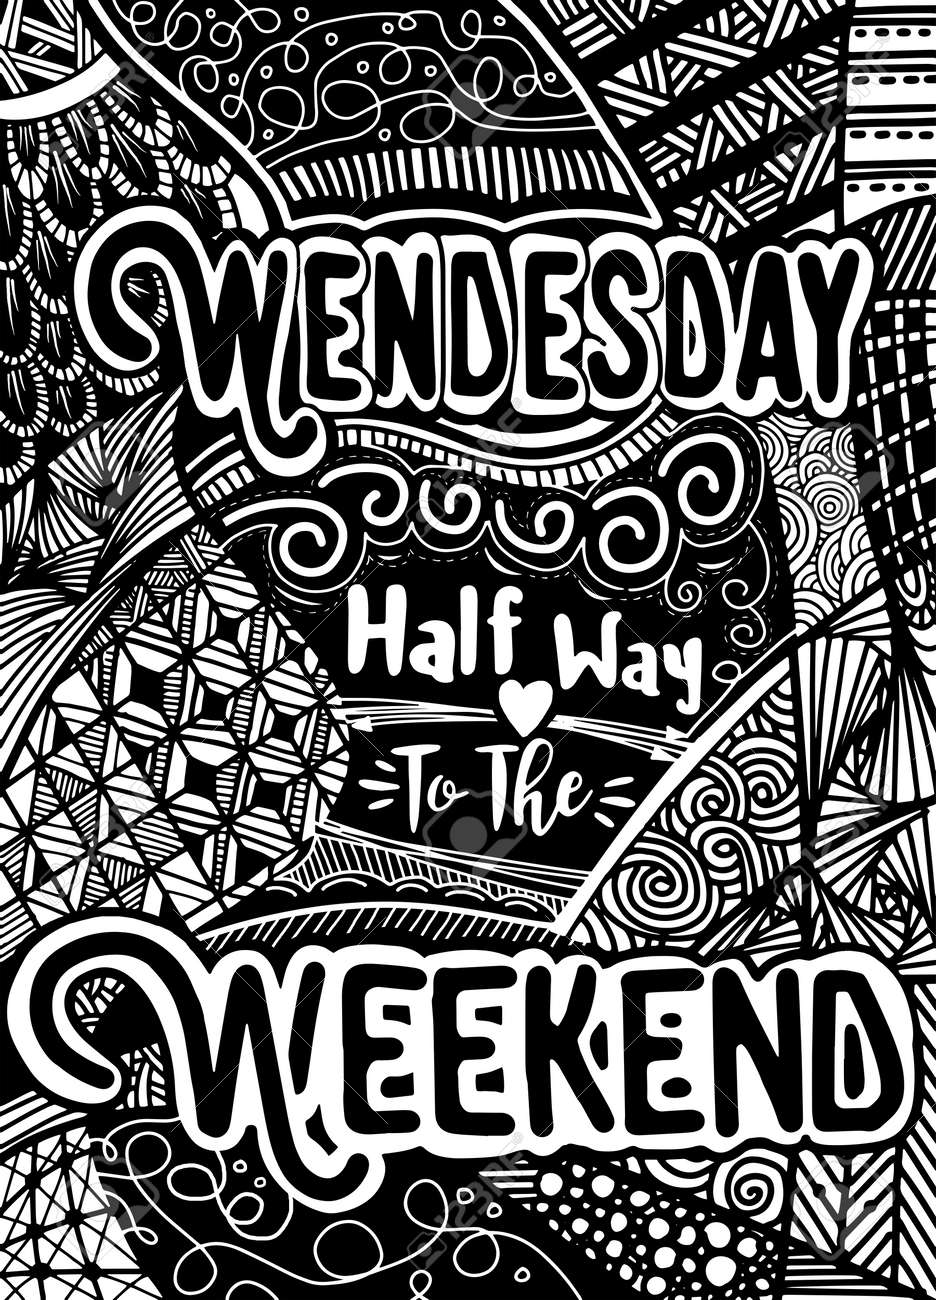 Week Days Motivation Quotes Wednesday Vector Ethnic Pattern